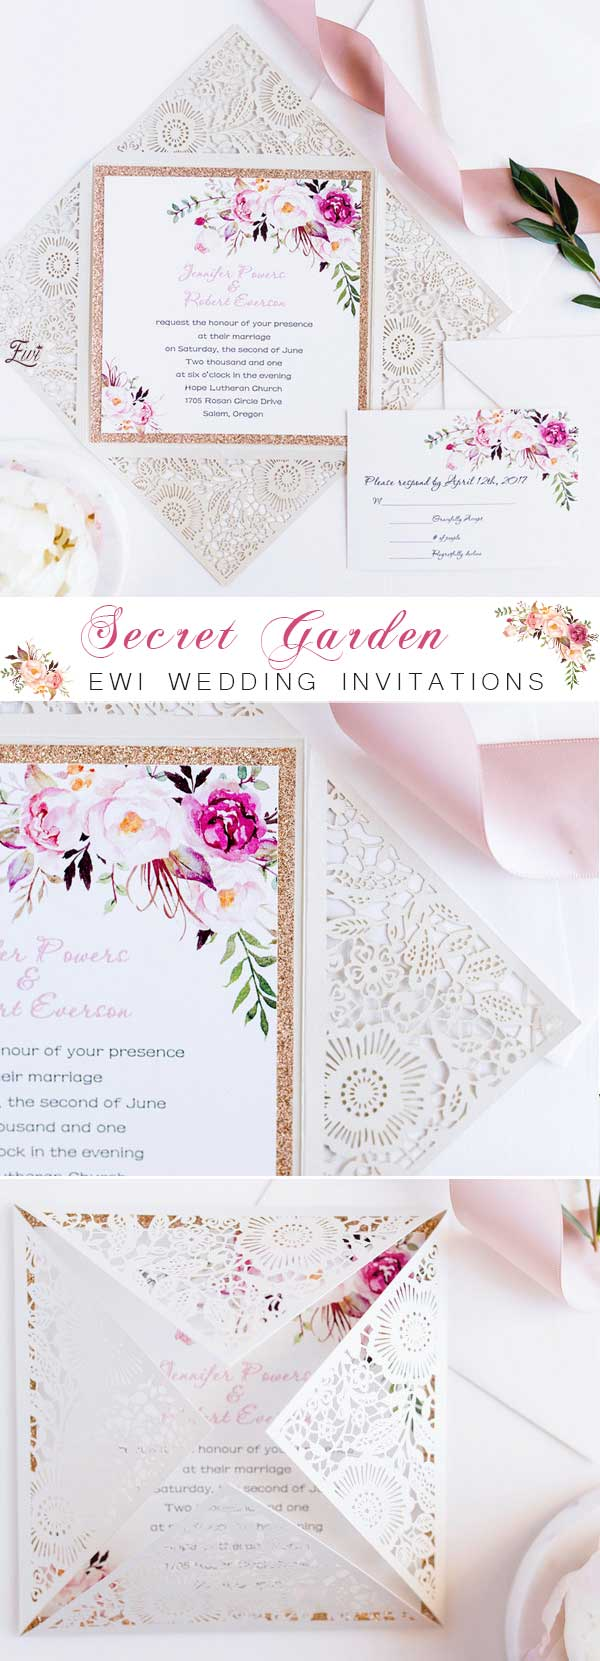 Bohemian Rustic Floral Glittery Laser Cut Wedding Invitations EWWS085